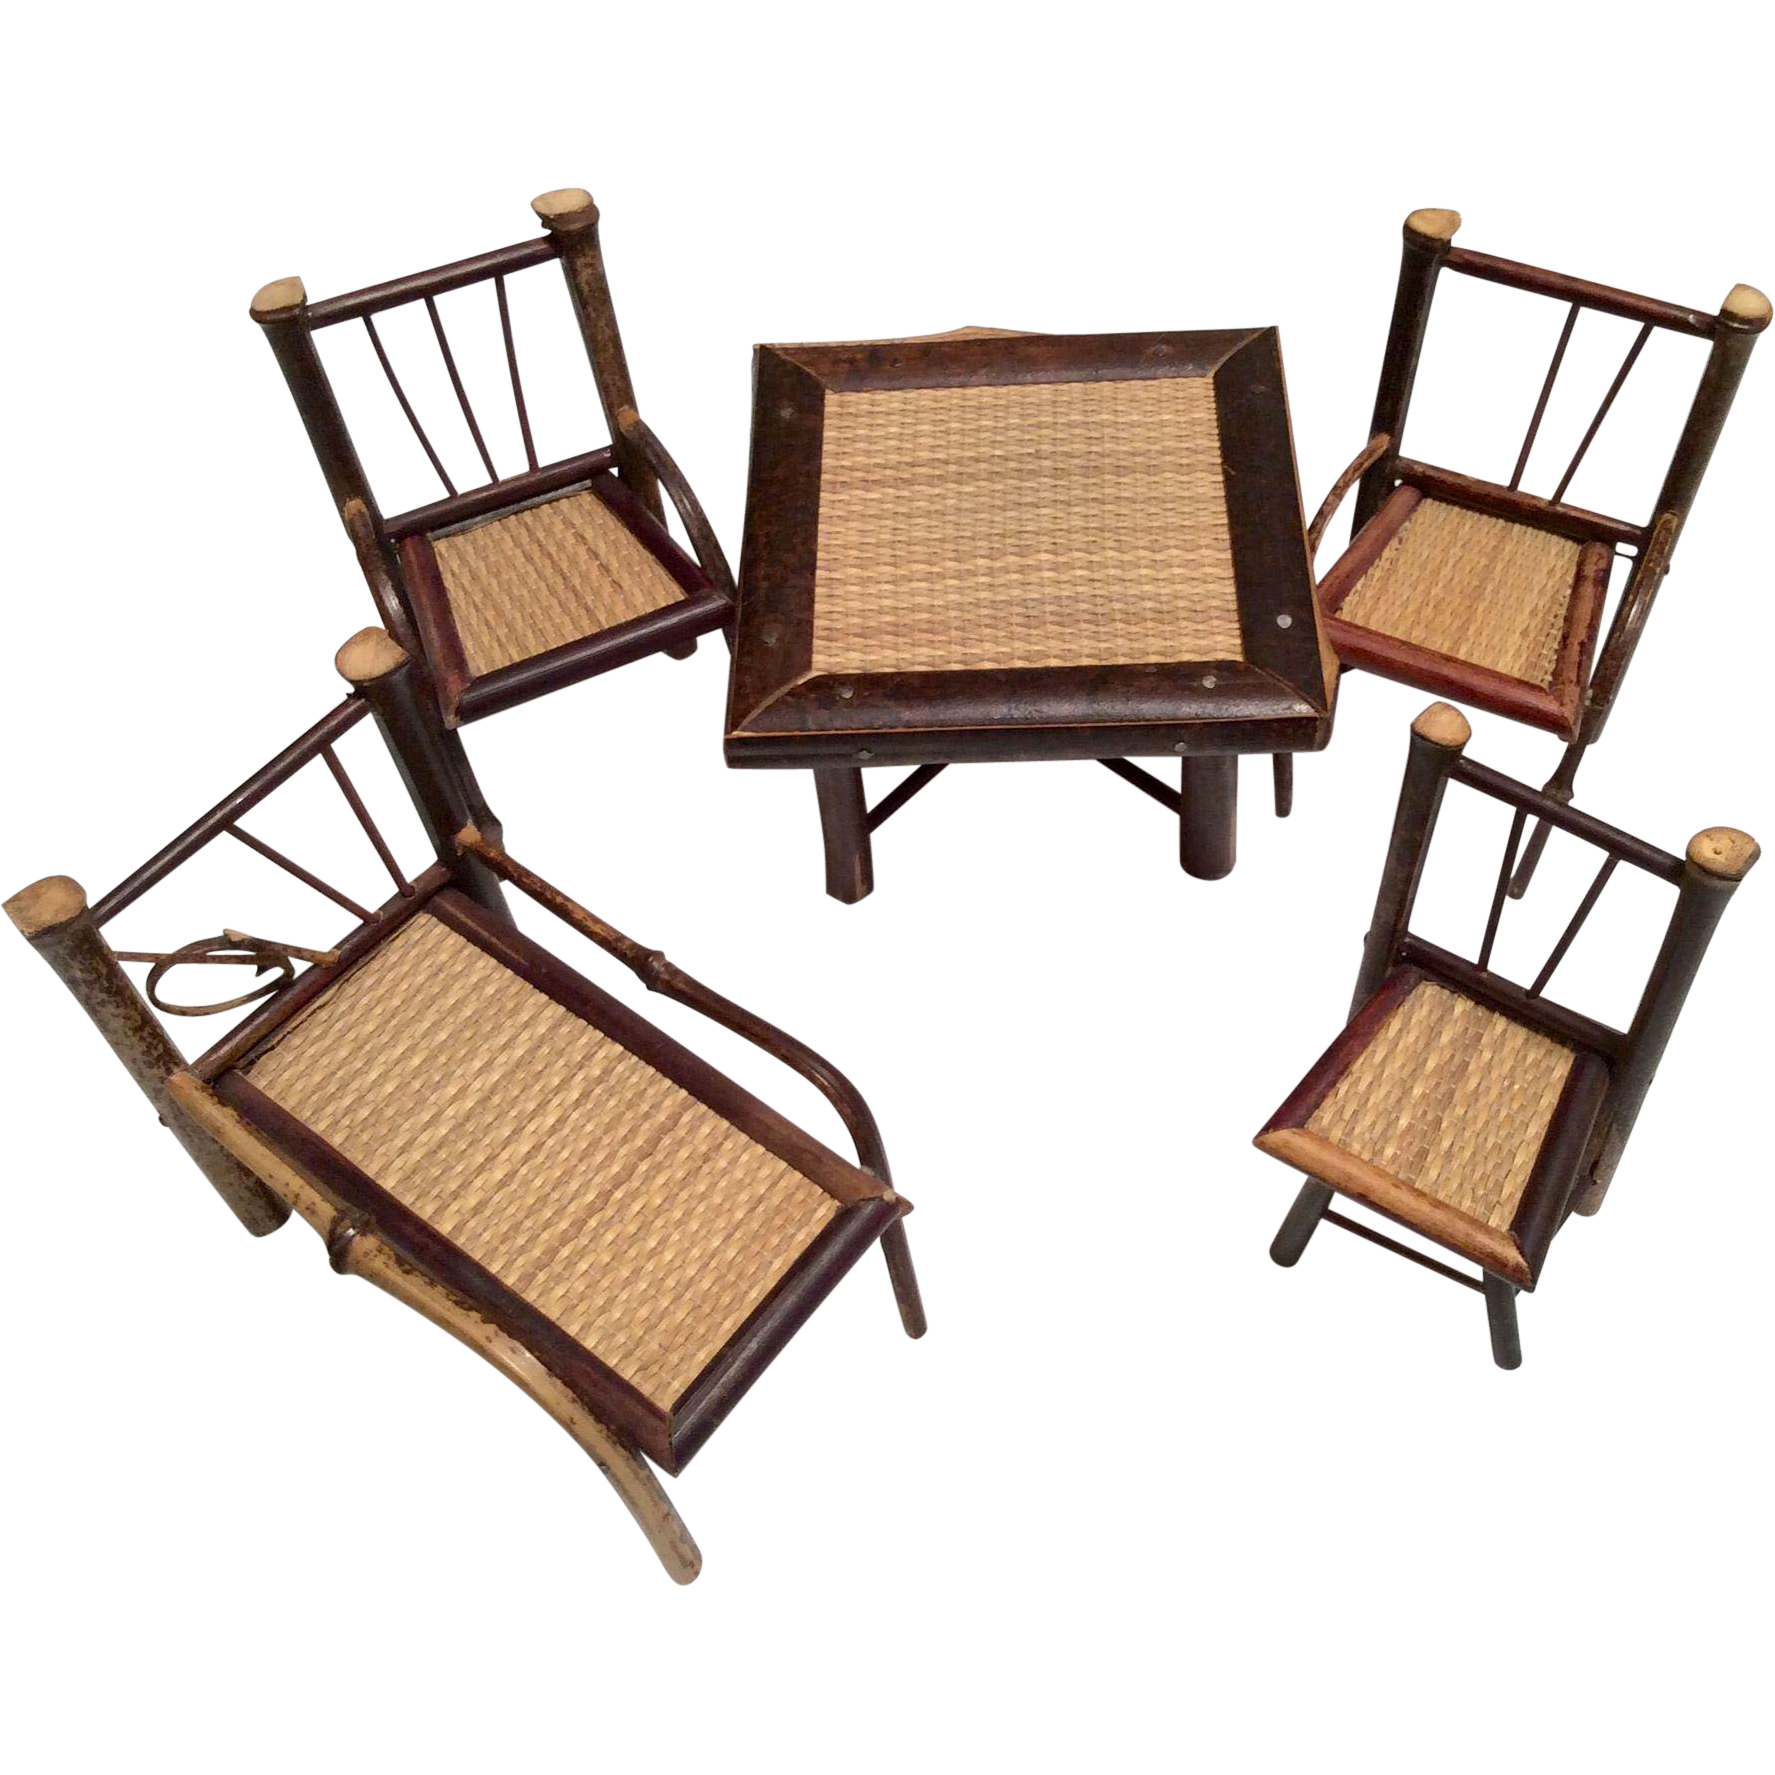 Bamboo Wood Dollhouse or Doll Size Vintage Furniture Table Chairs